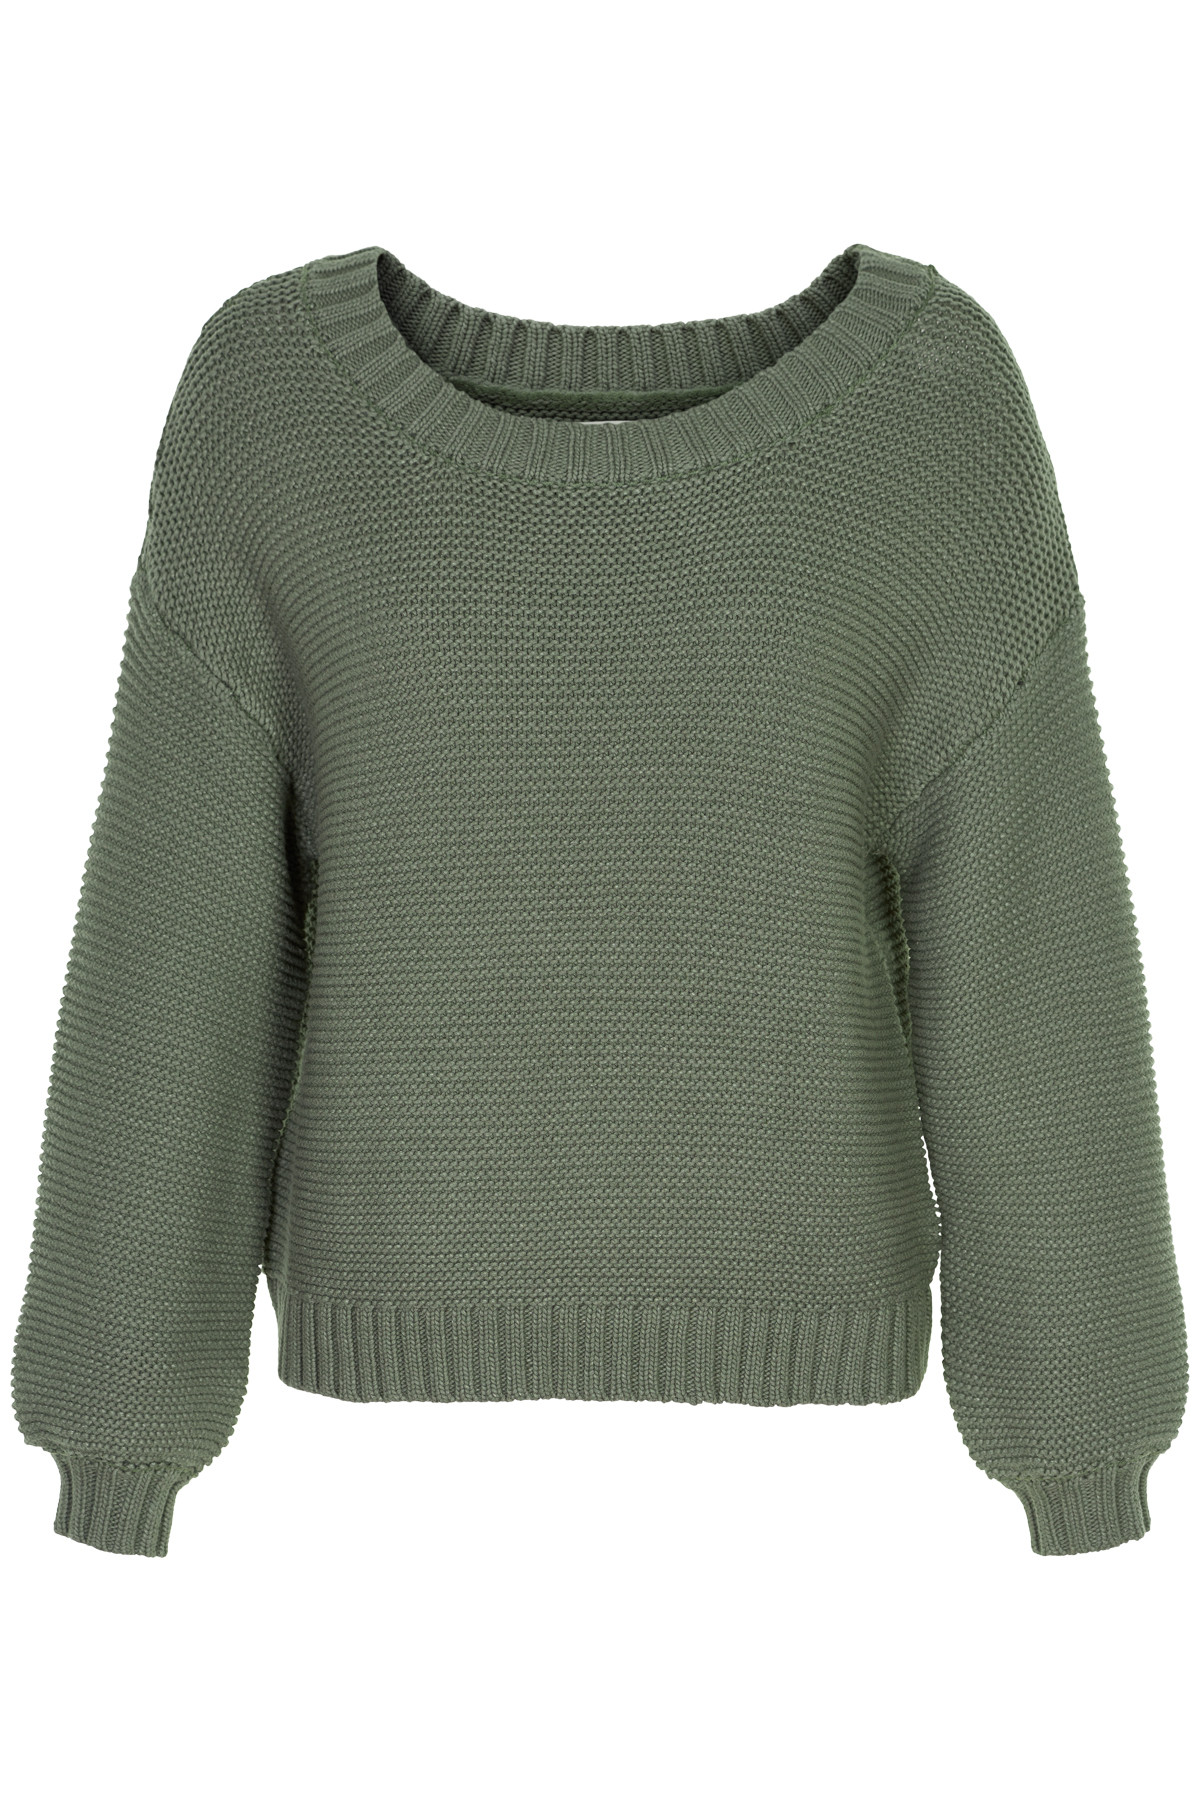 Image of   AND LESS RAIMONDO PULLOVER 5219206 (Castor Green, XL)